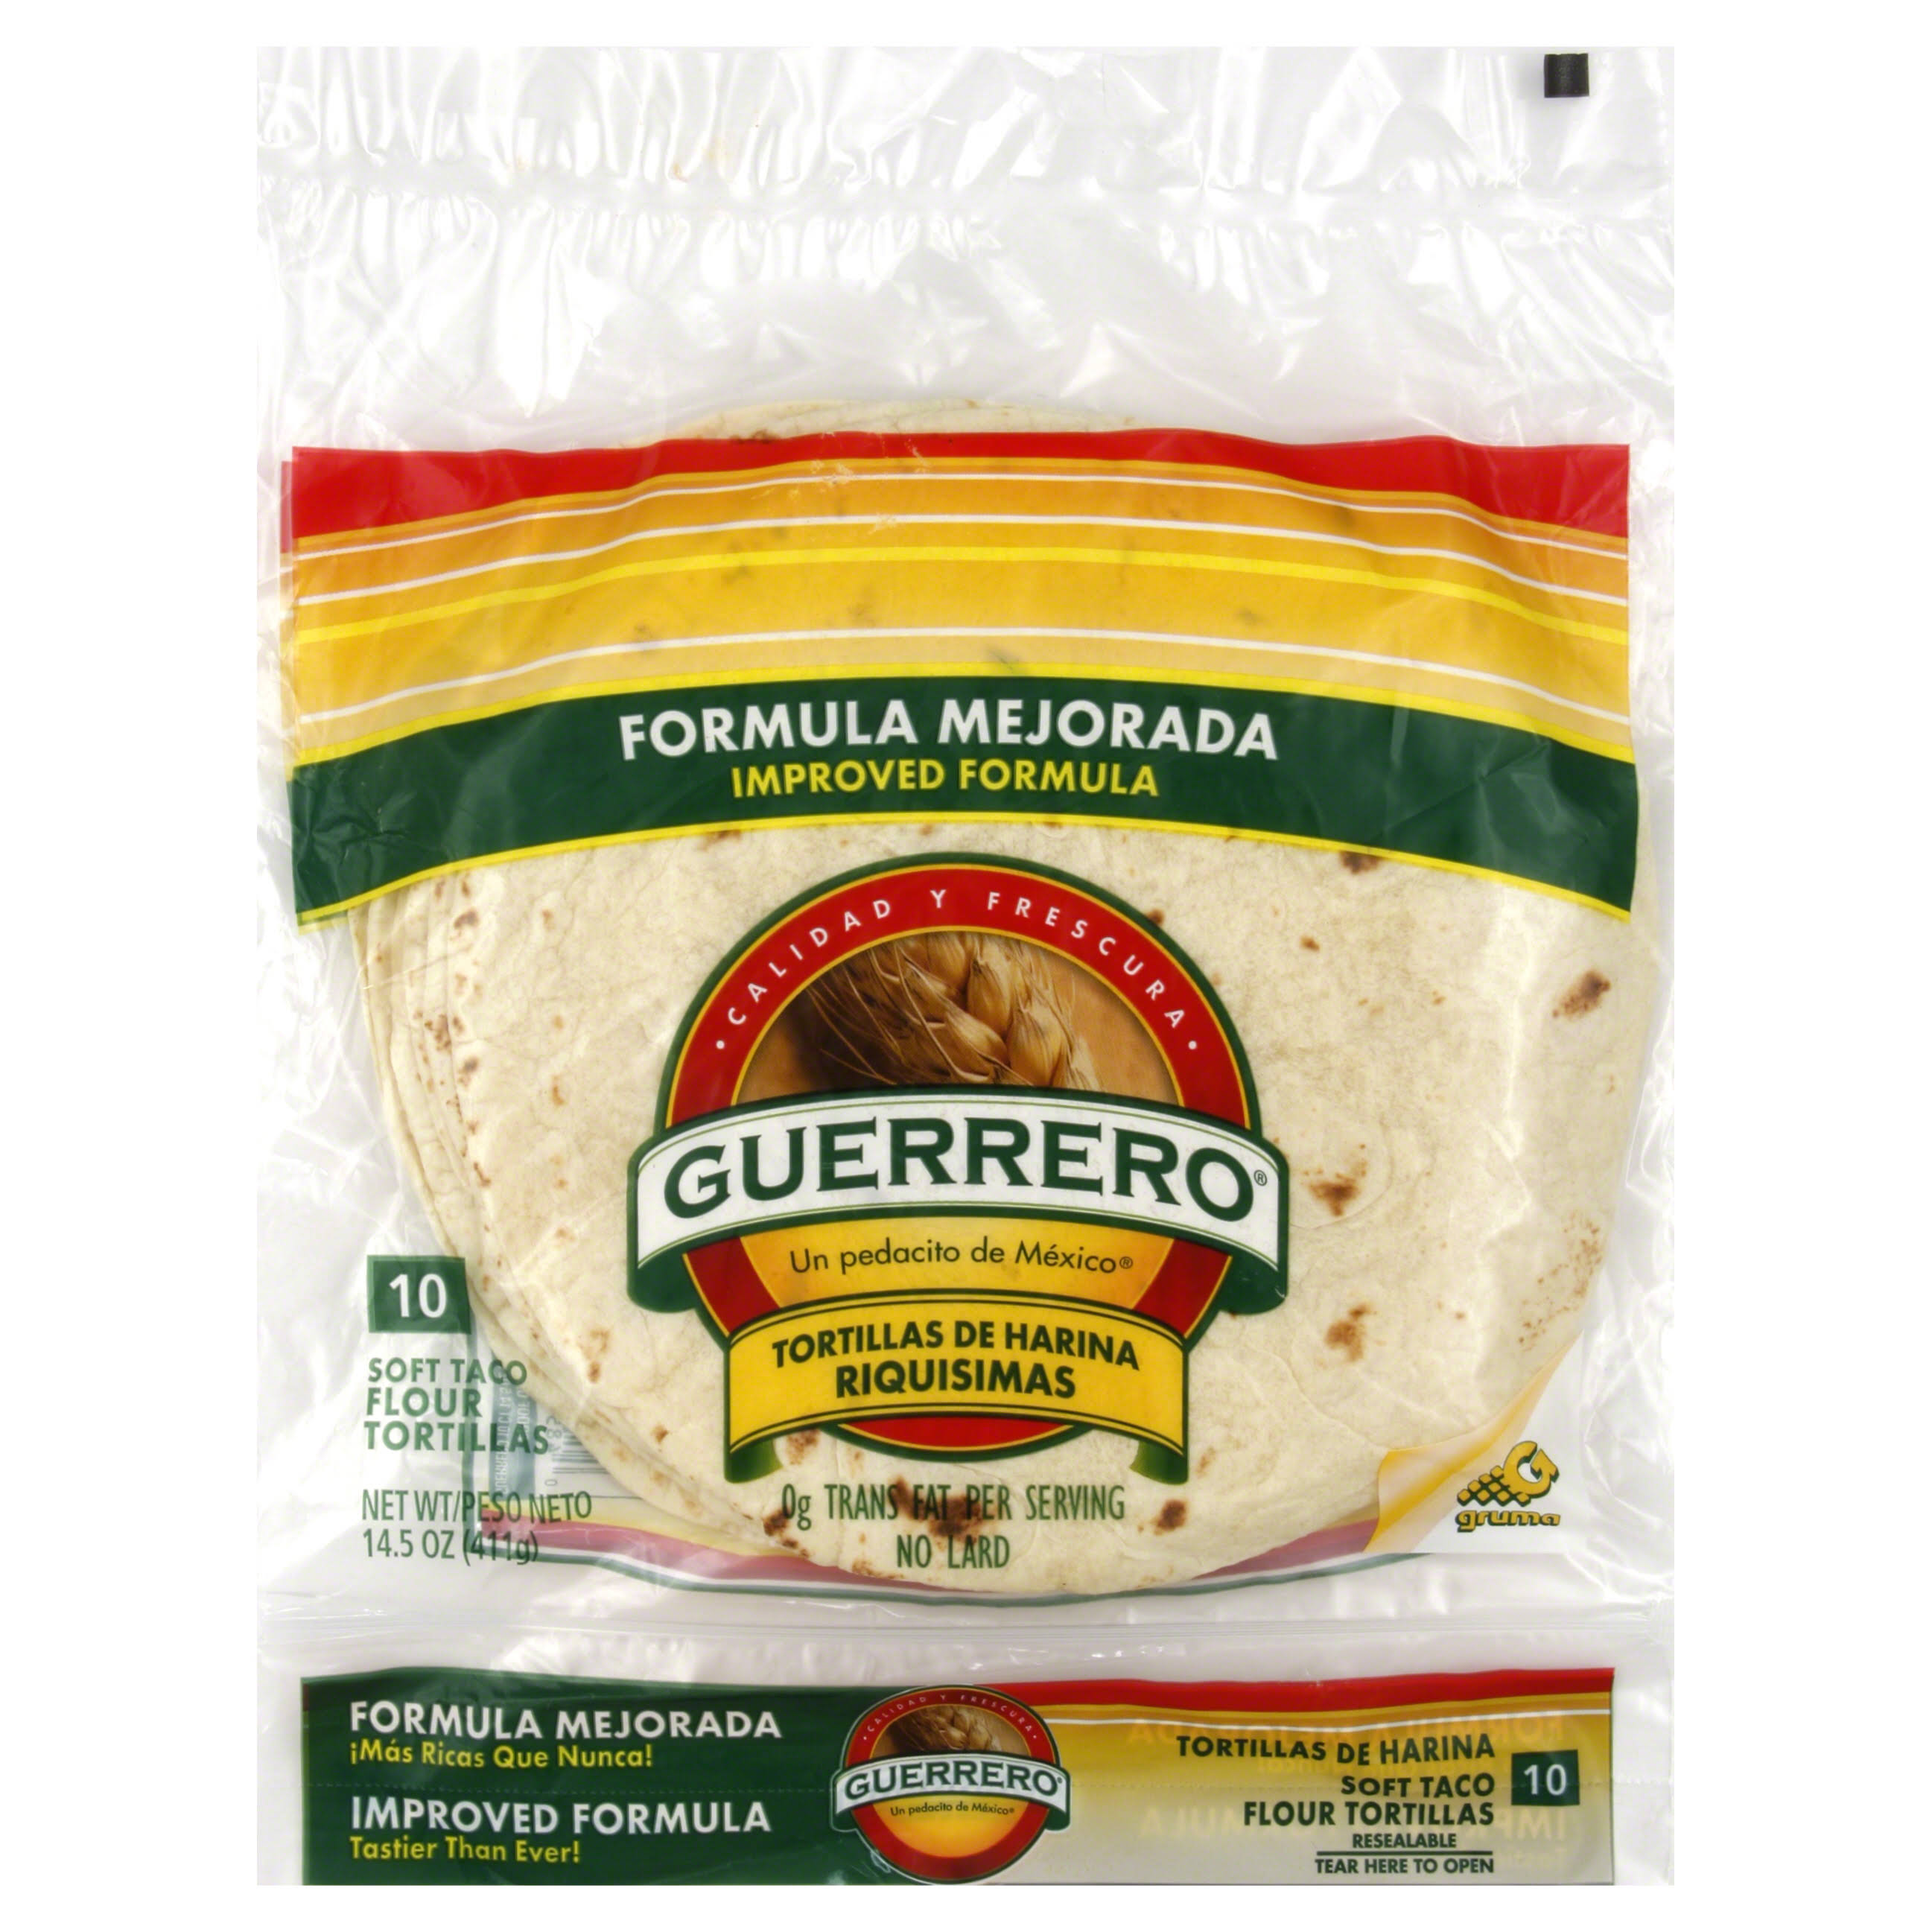 Guerrero Flour Tortillas - Soft Taco, 14.5oz